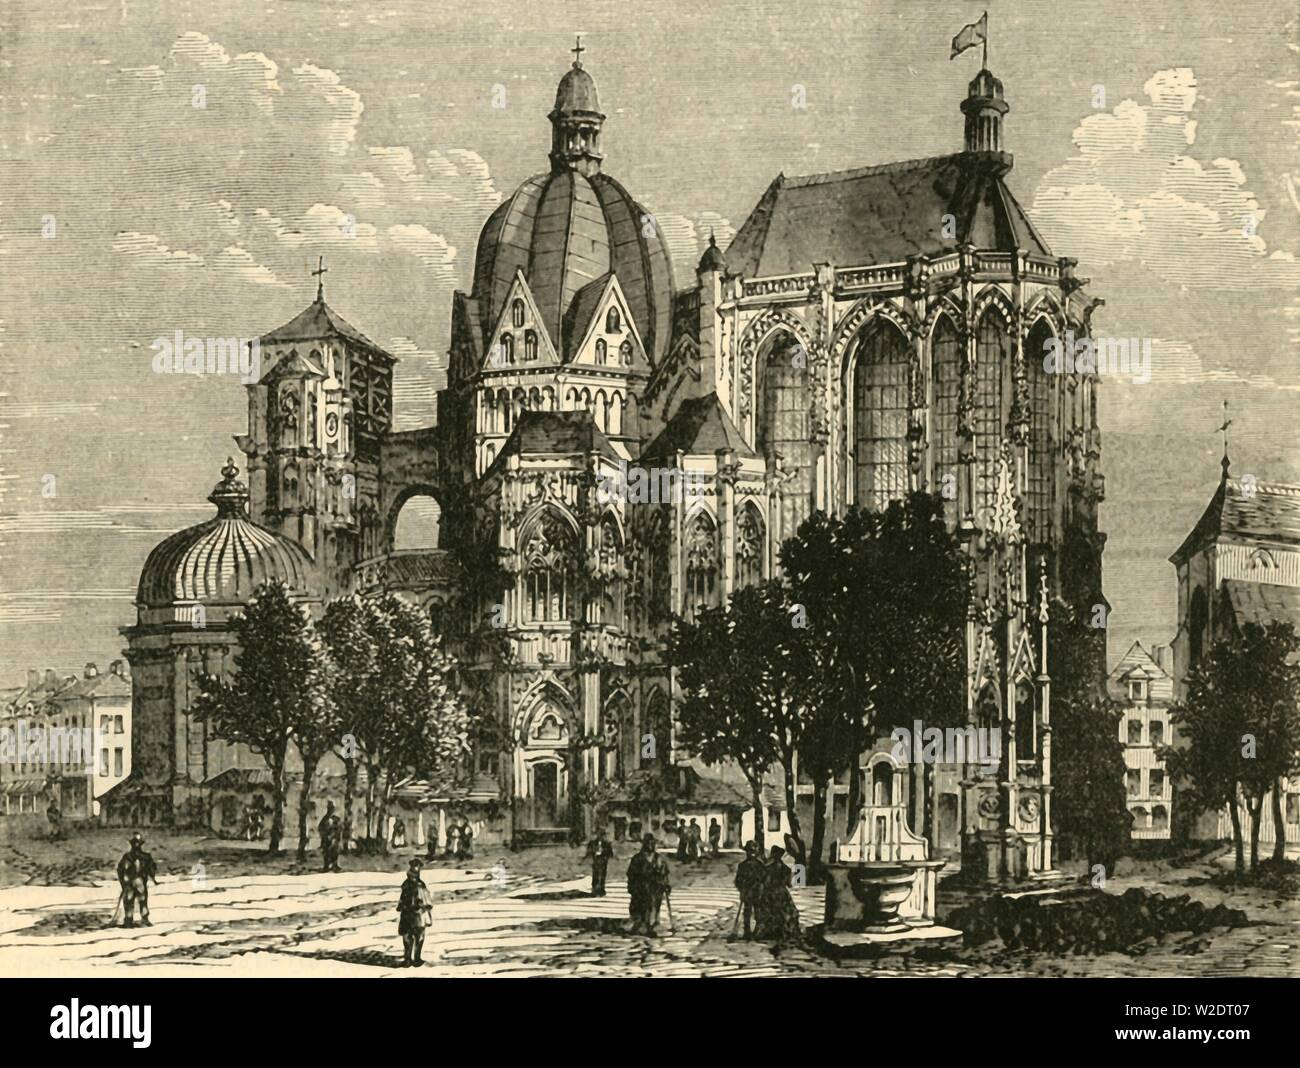 """'The Basilica of Aachen, or Aix-La-Chapelle', 1890. Aachen Cathedral was constructed by order of emperor Charlemagne, who was buried here after his death in 814. From """"Cassell's Illustrated Universal History, Vol. III - The Middle Ages"""", by Edmund Ollier. [Cassell and Company, Limited, London, Paris and Melbourne, 1890. ] - Stock Image"""